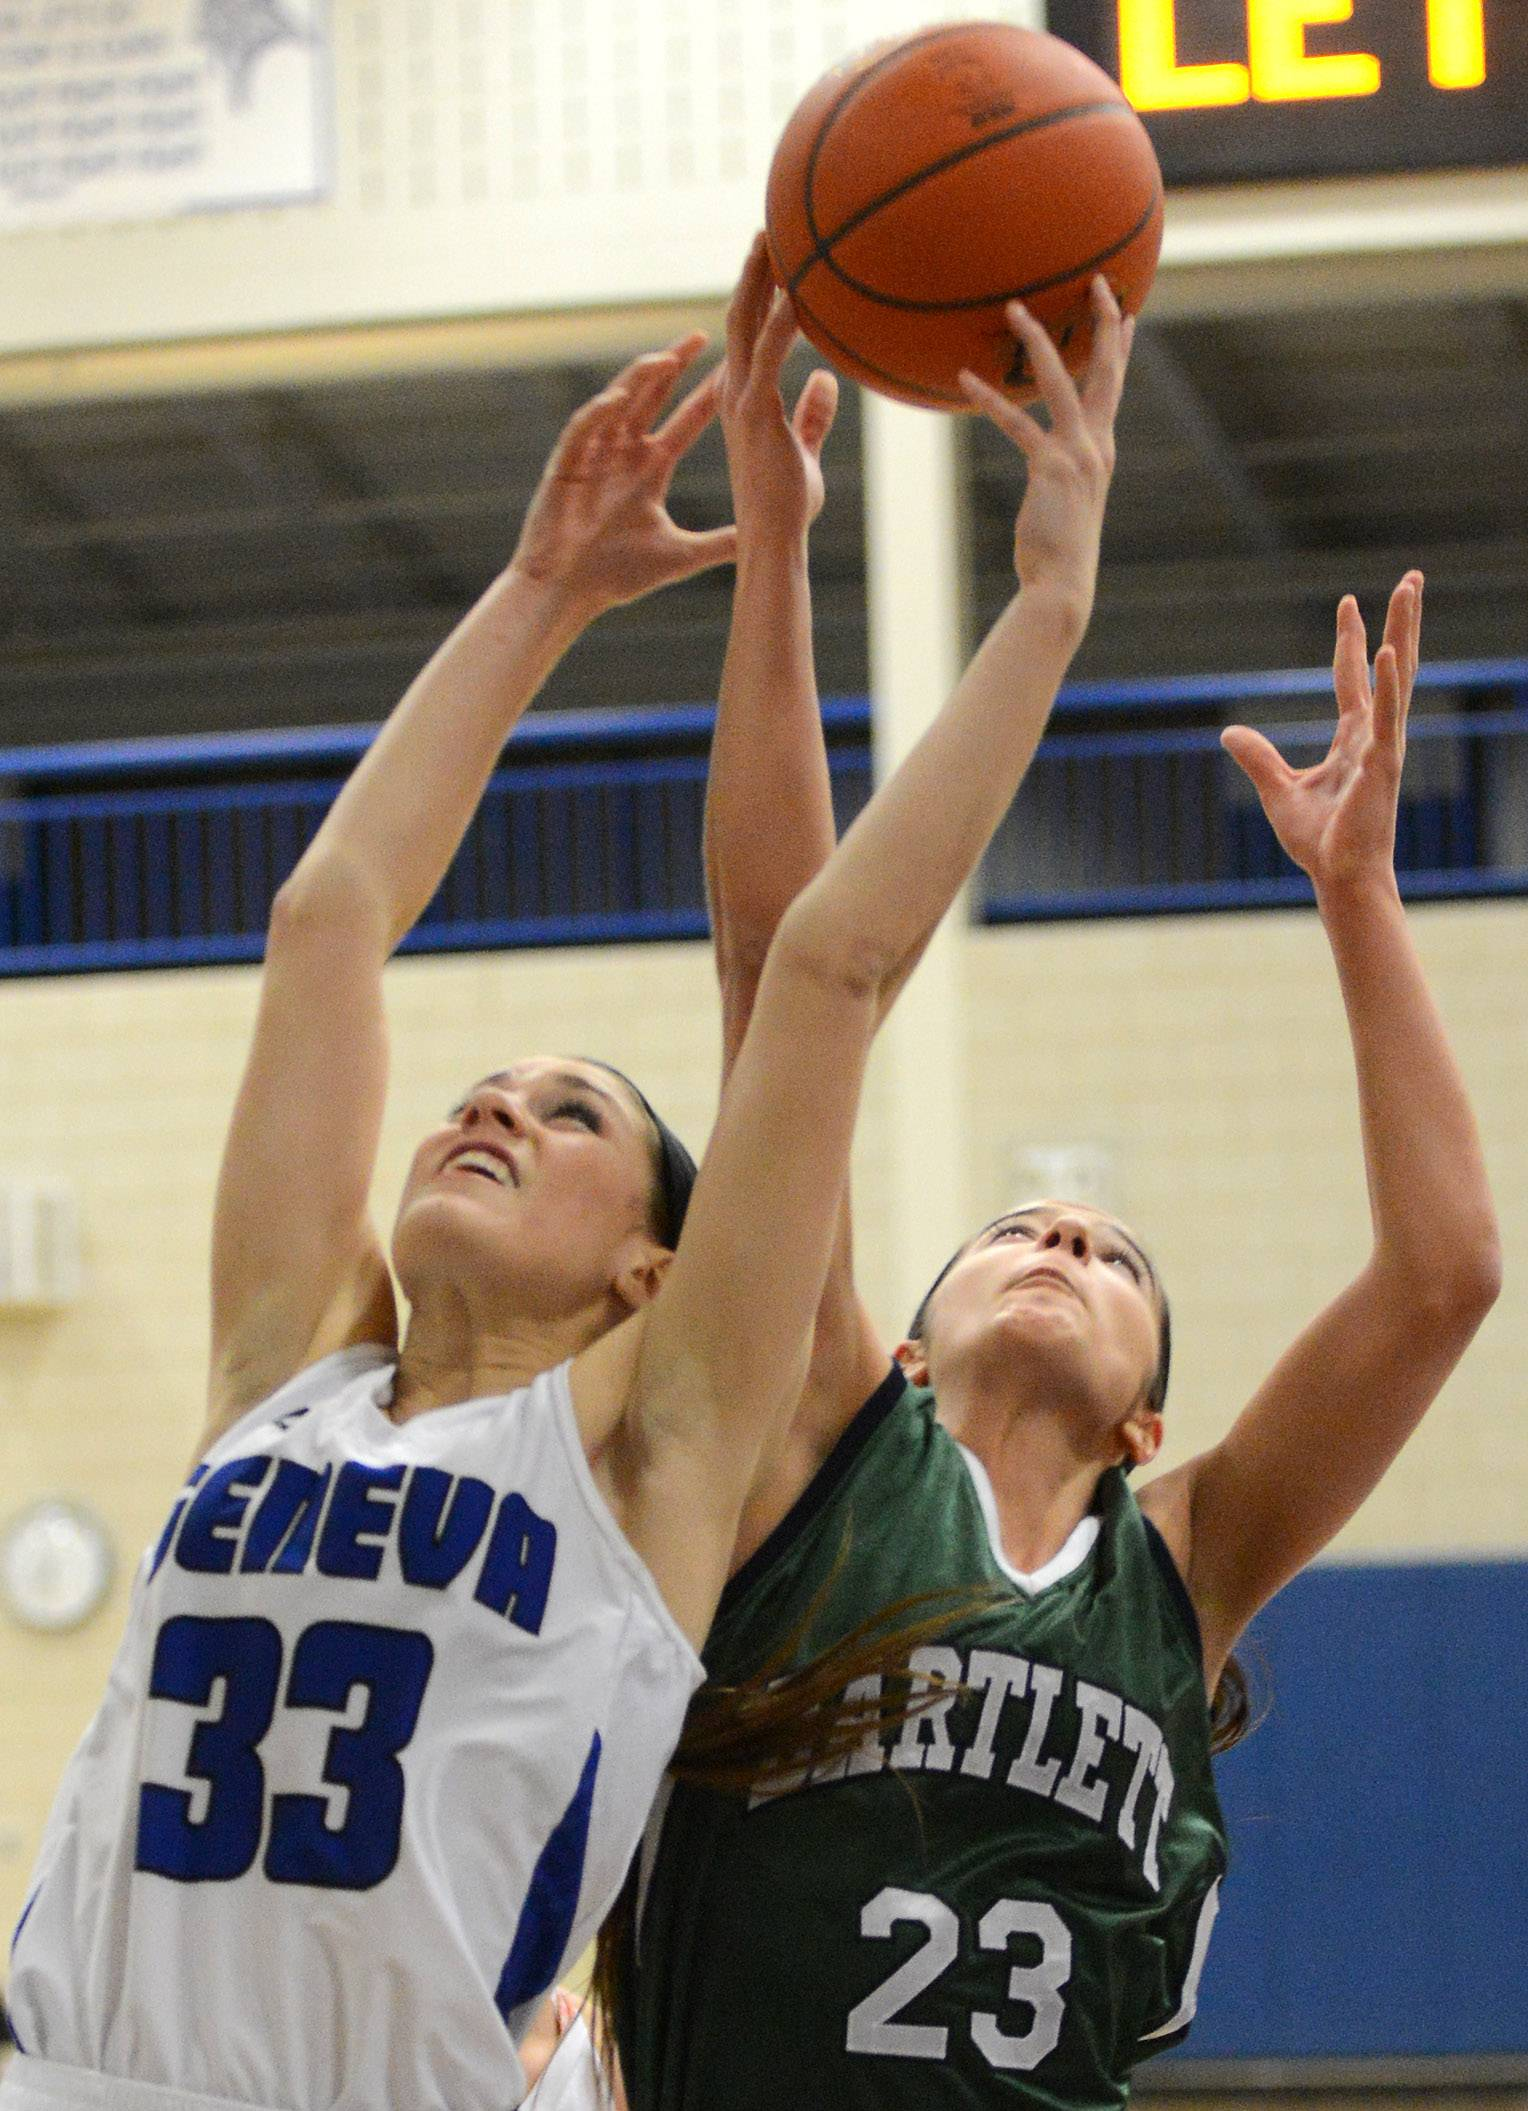 Geneva's Madeline Dunn (33) and Bartlett's Ally Giampapa (23) battle for a rebound during Thursday's game in Geneva.